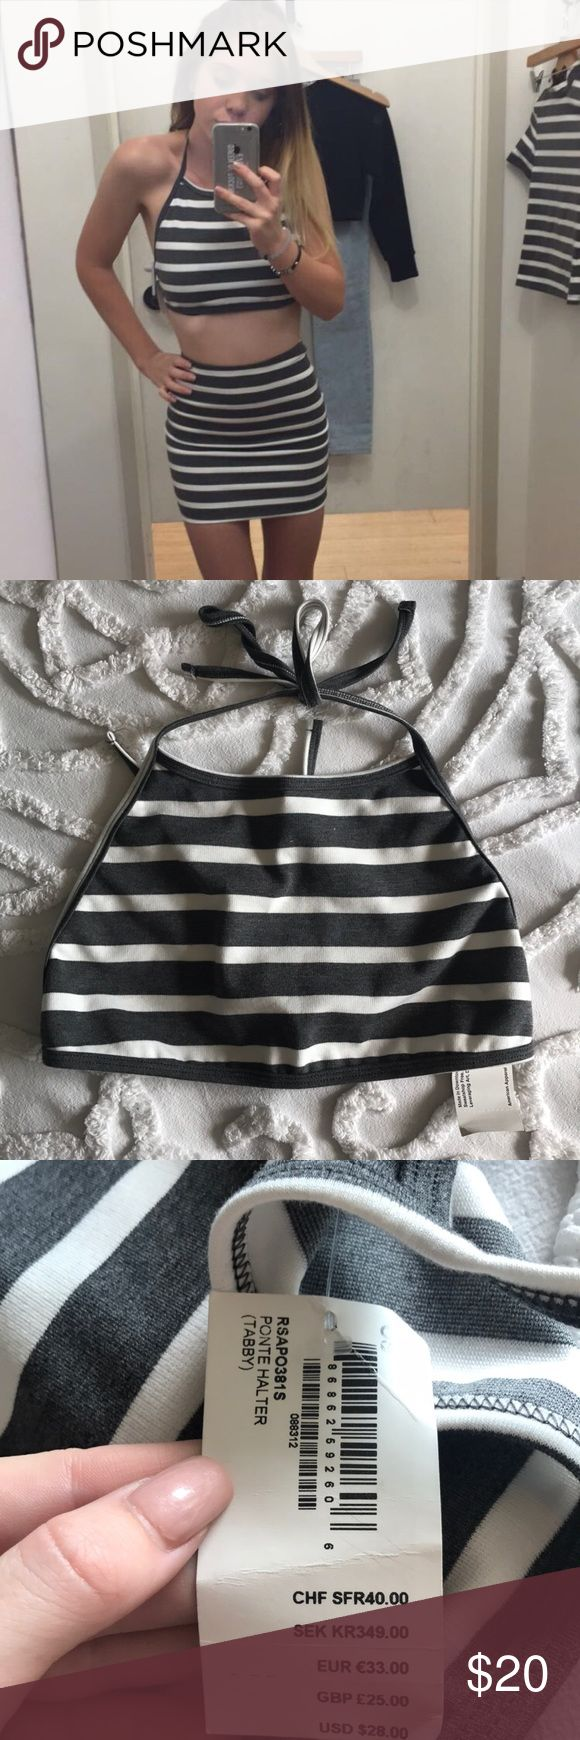 American Apparel crop top Brand new with tags! Also have matching skirt for sale on my page! American Apparel Tops Crop Tops